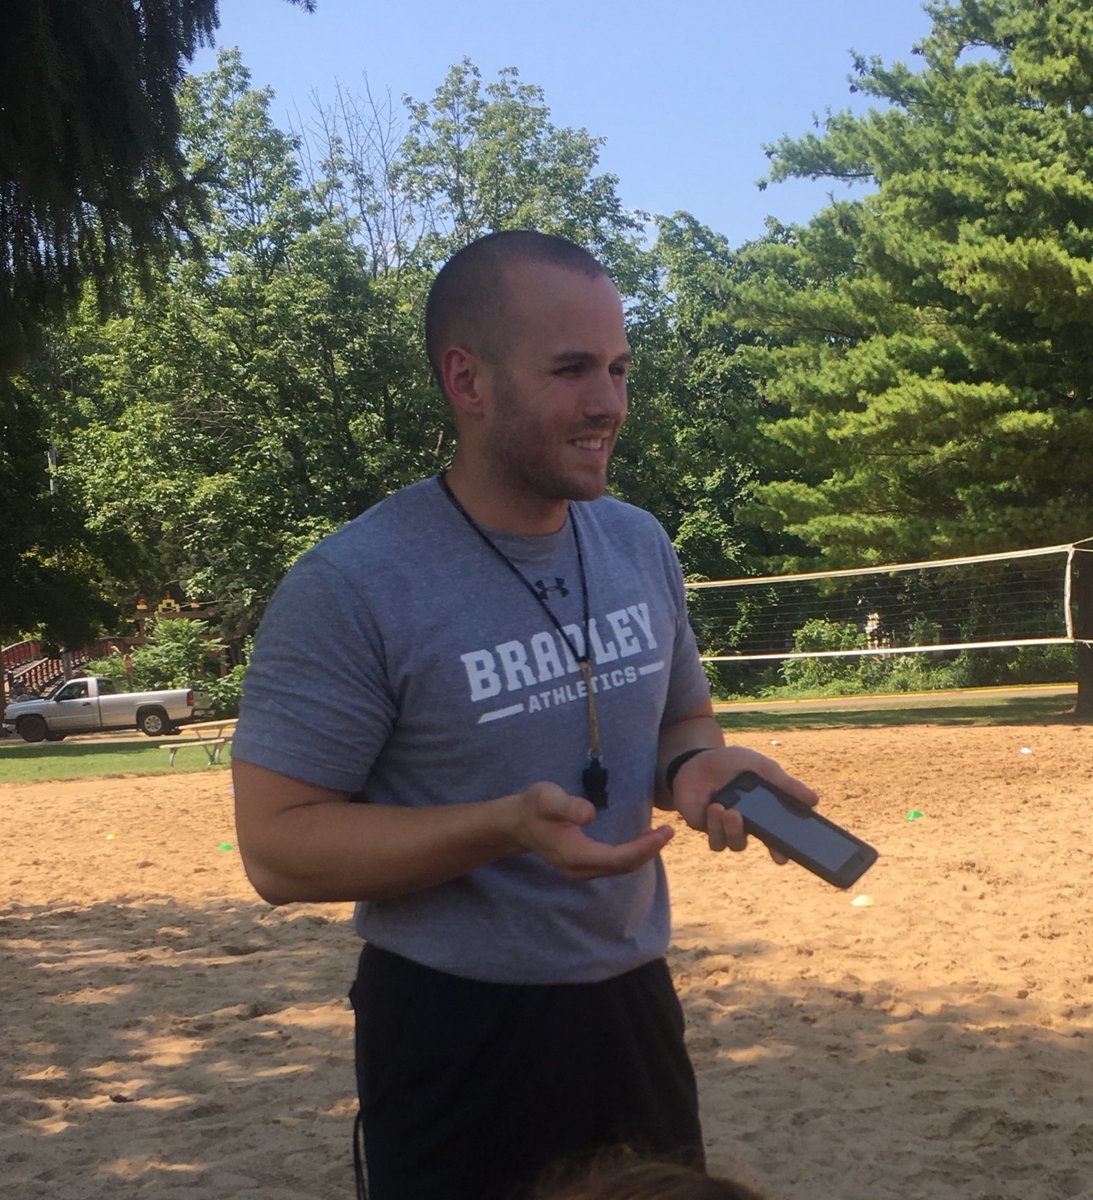 Join us in wishing our Strength and Conditioning Coach Alex @Gregurich a very Happy Birthday! #GainTrain  <br>http://pic.twitter.com/l7LWsRUOo6